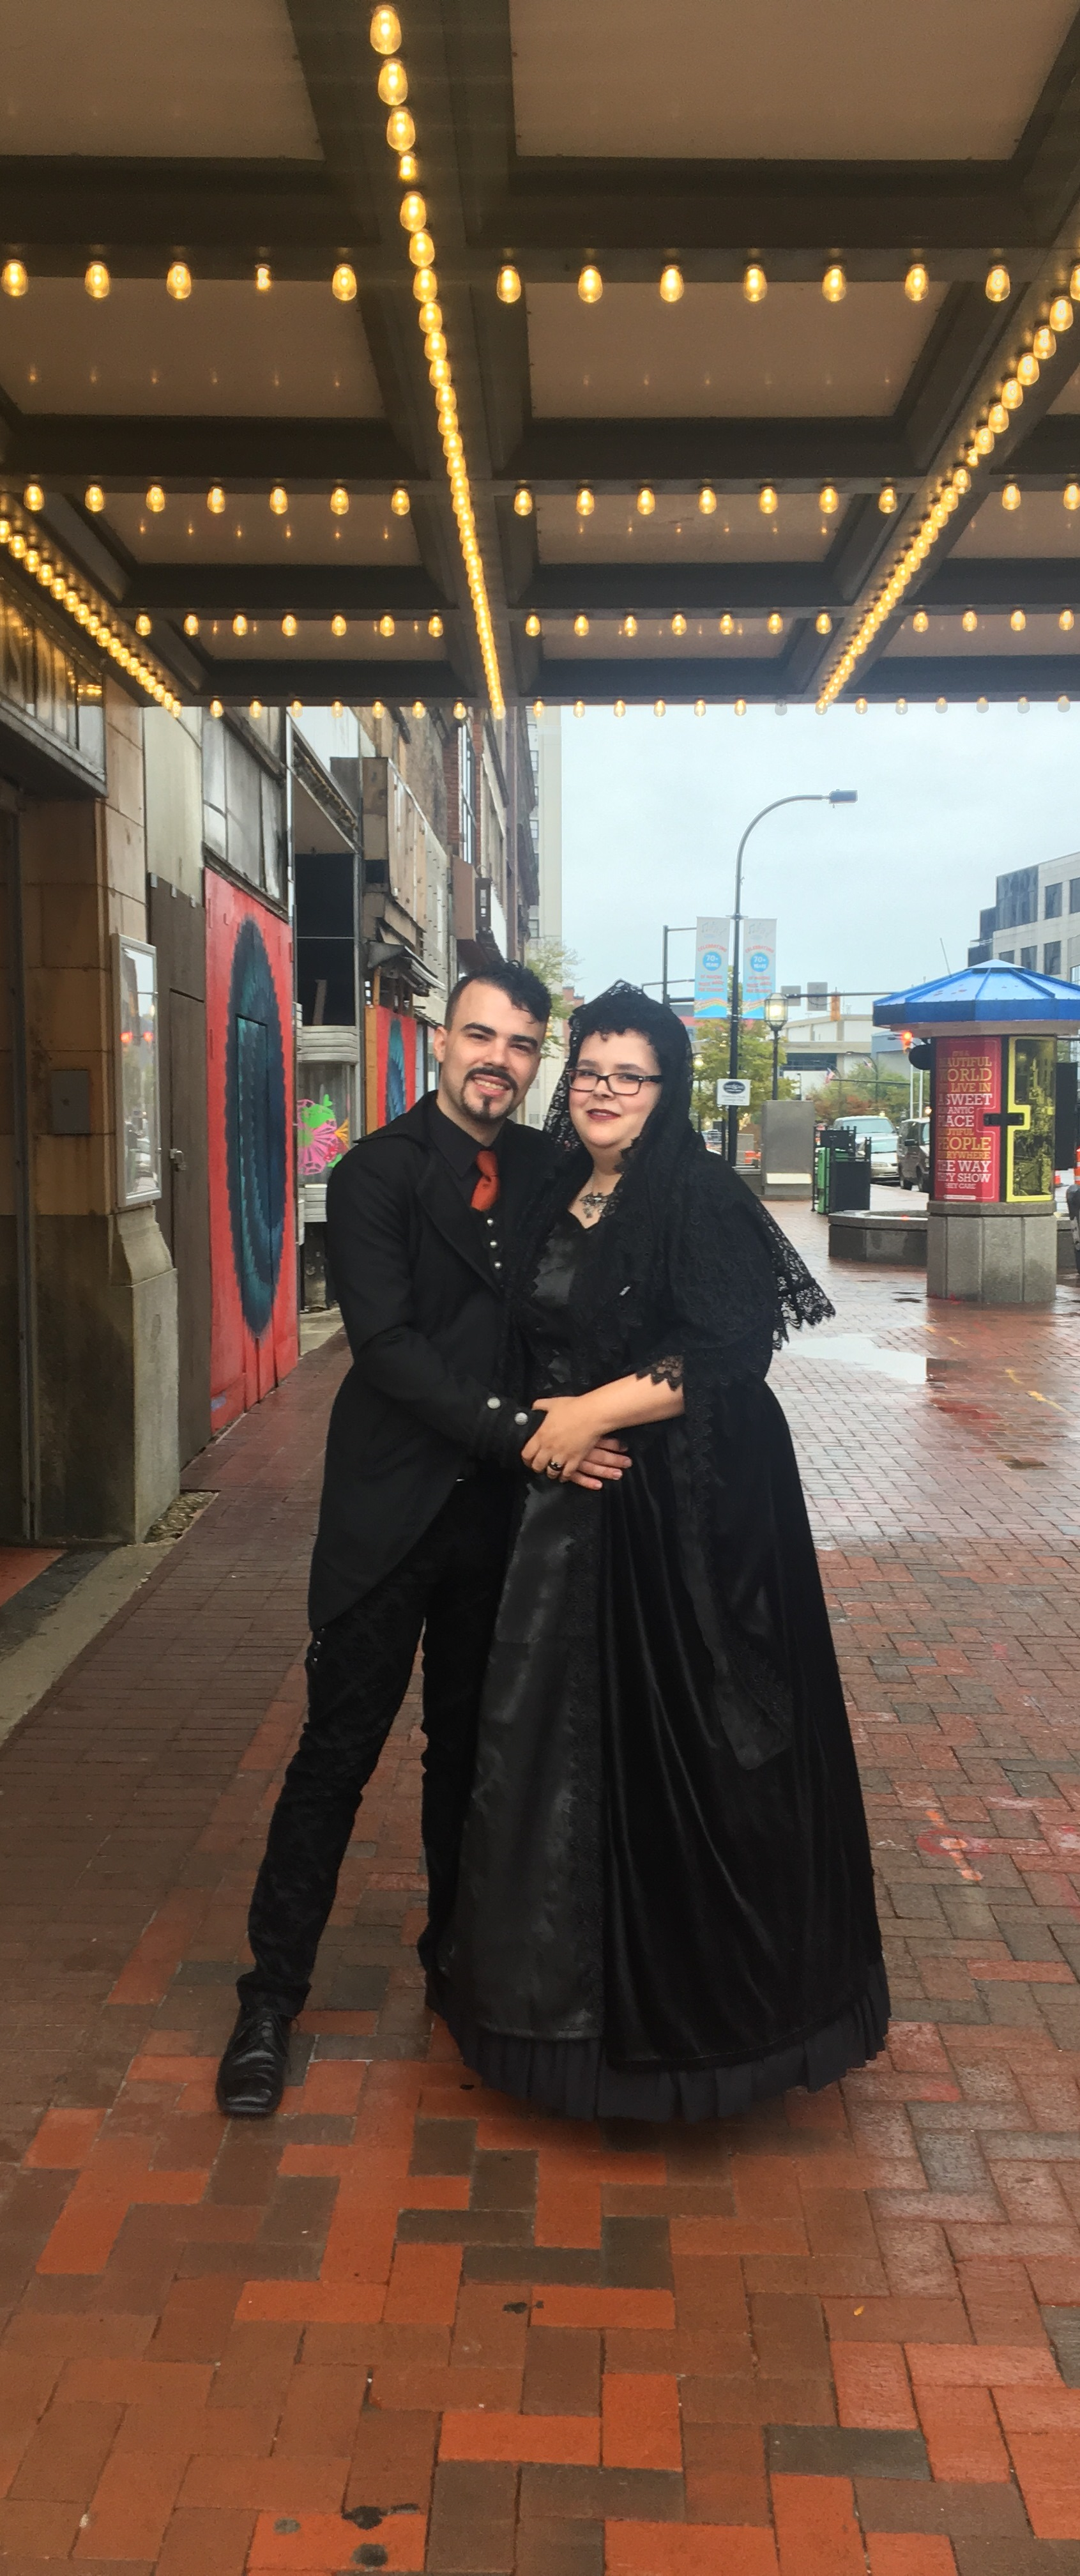 Mr. Josh Brown and Mrs. Anita James were married on Halloween in 2018 at the Akron Civic Theatre